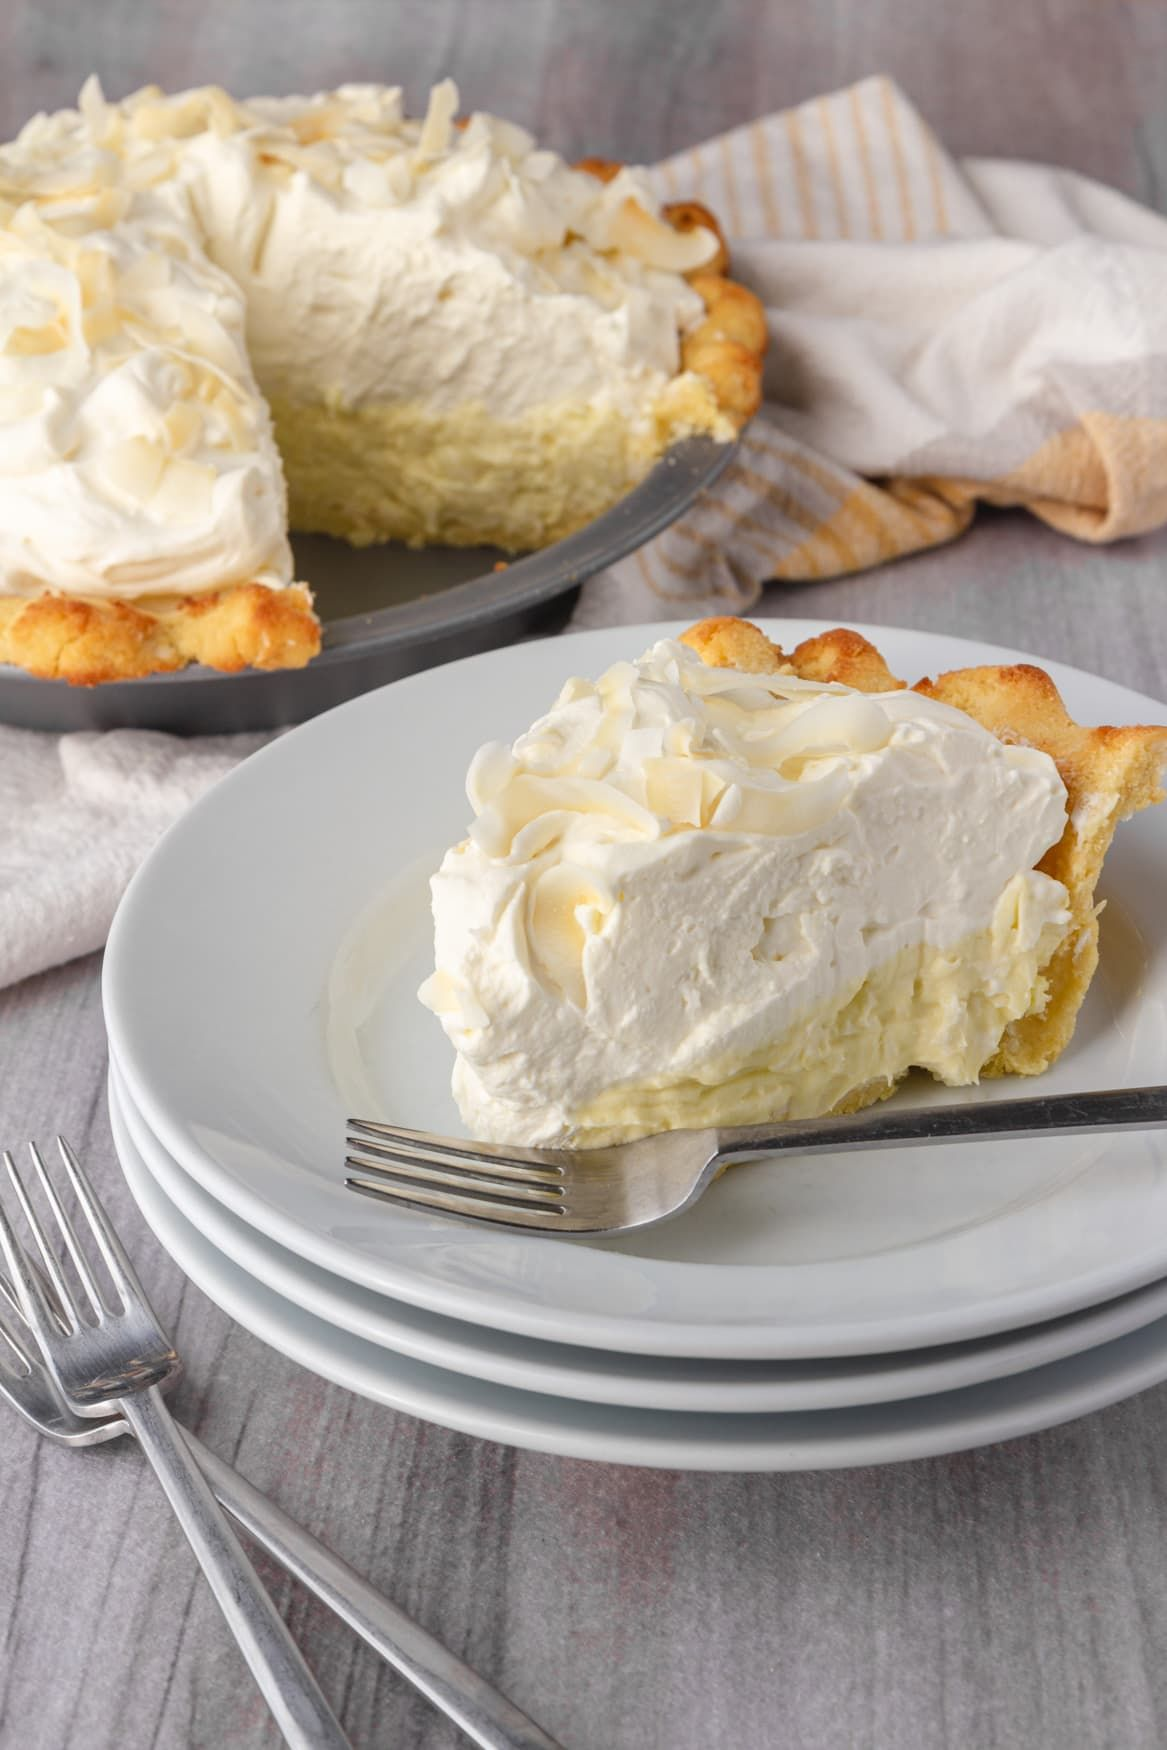 Keto Coconut Cream Pie - Patrick Maese